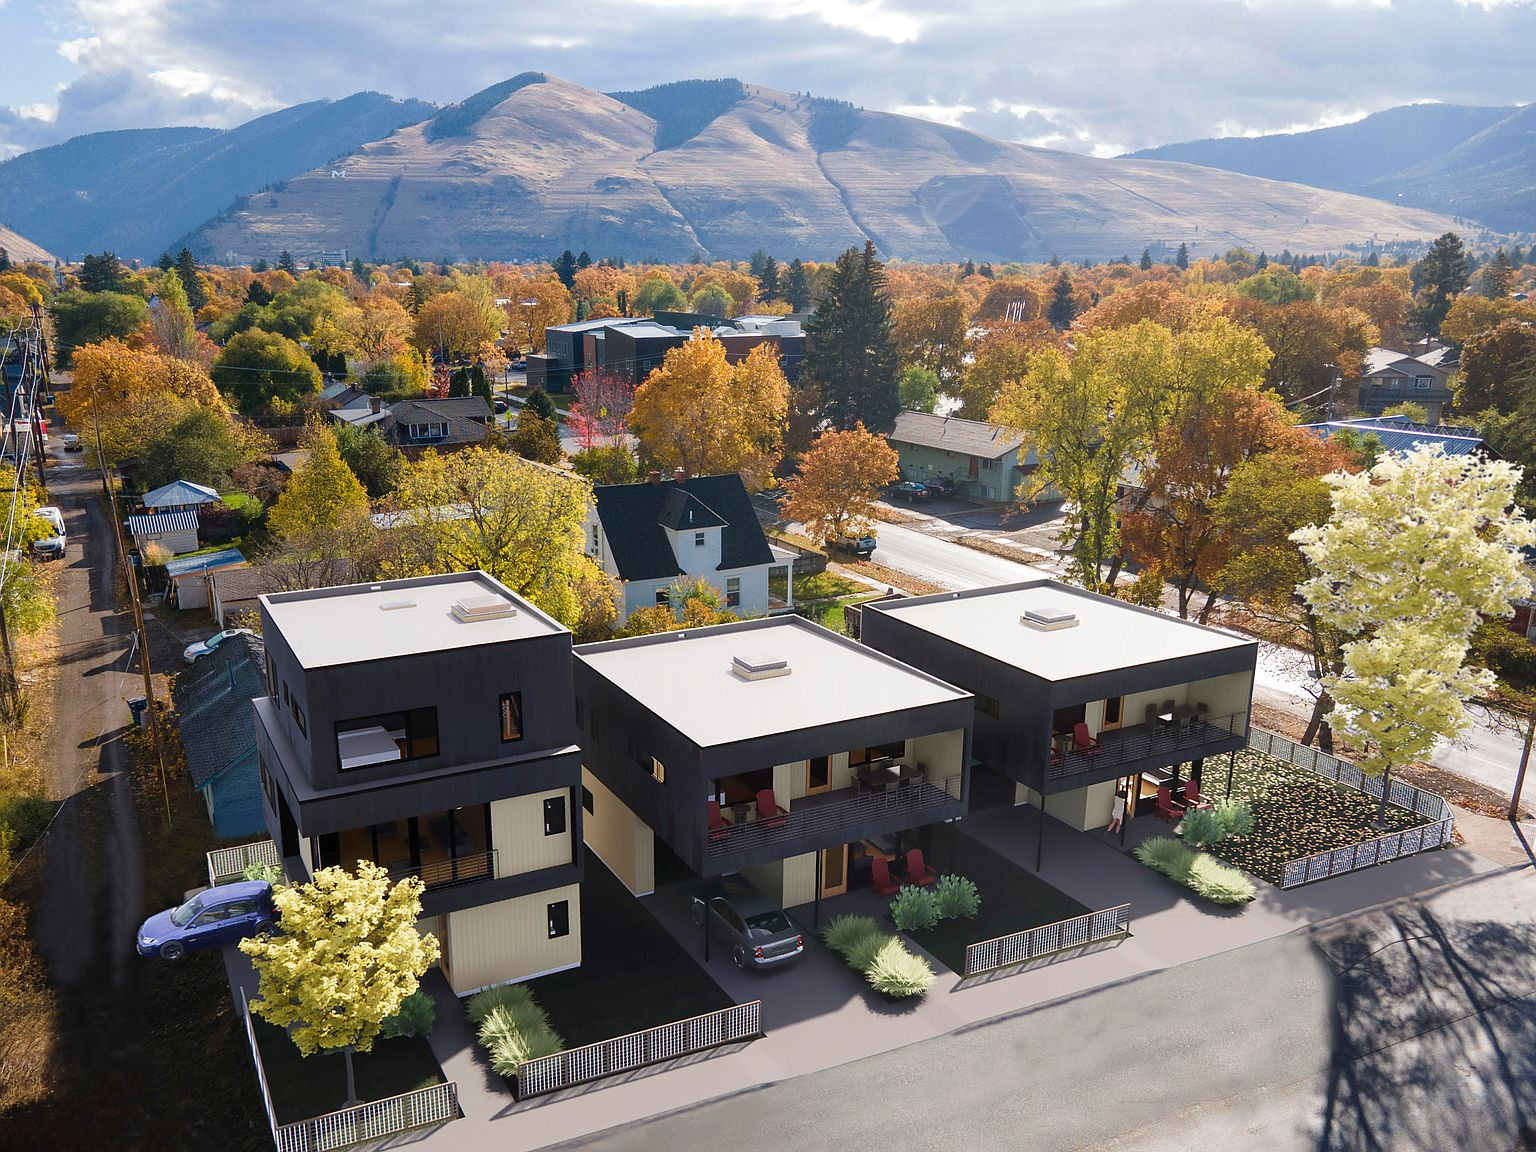 776 Ivy St Missoula Mt 59801 Zillow The gateway to western montana. 776 ivy st missoula mt 59801 mls 22017910 zillow